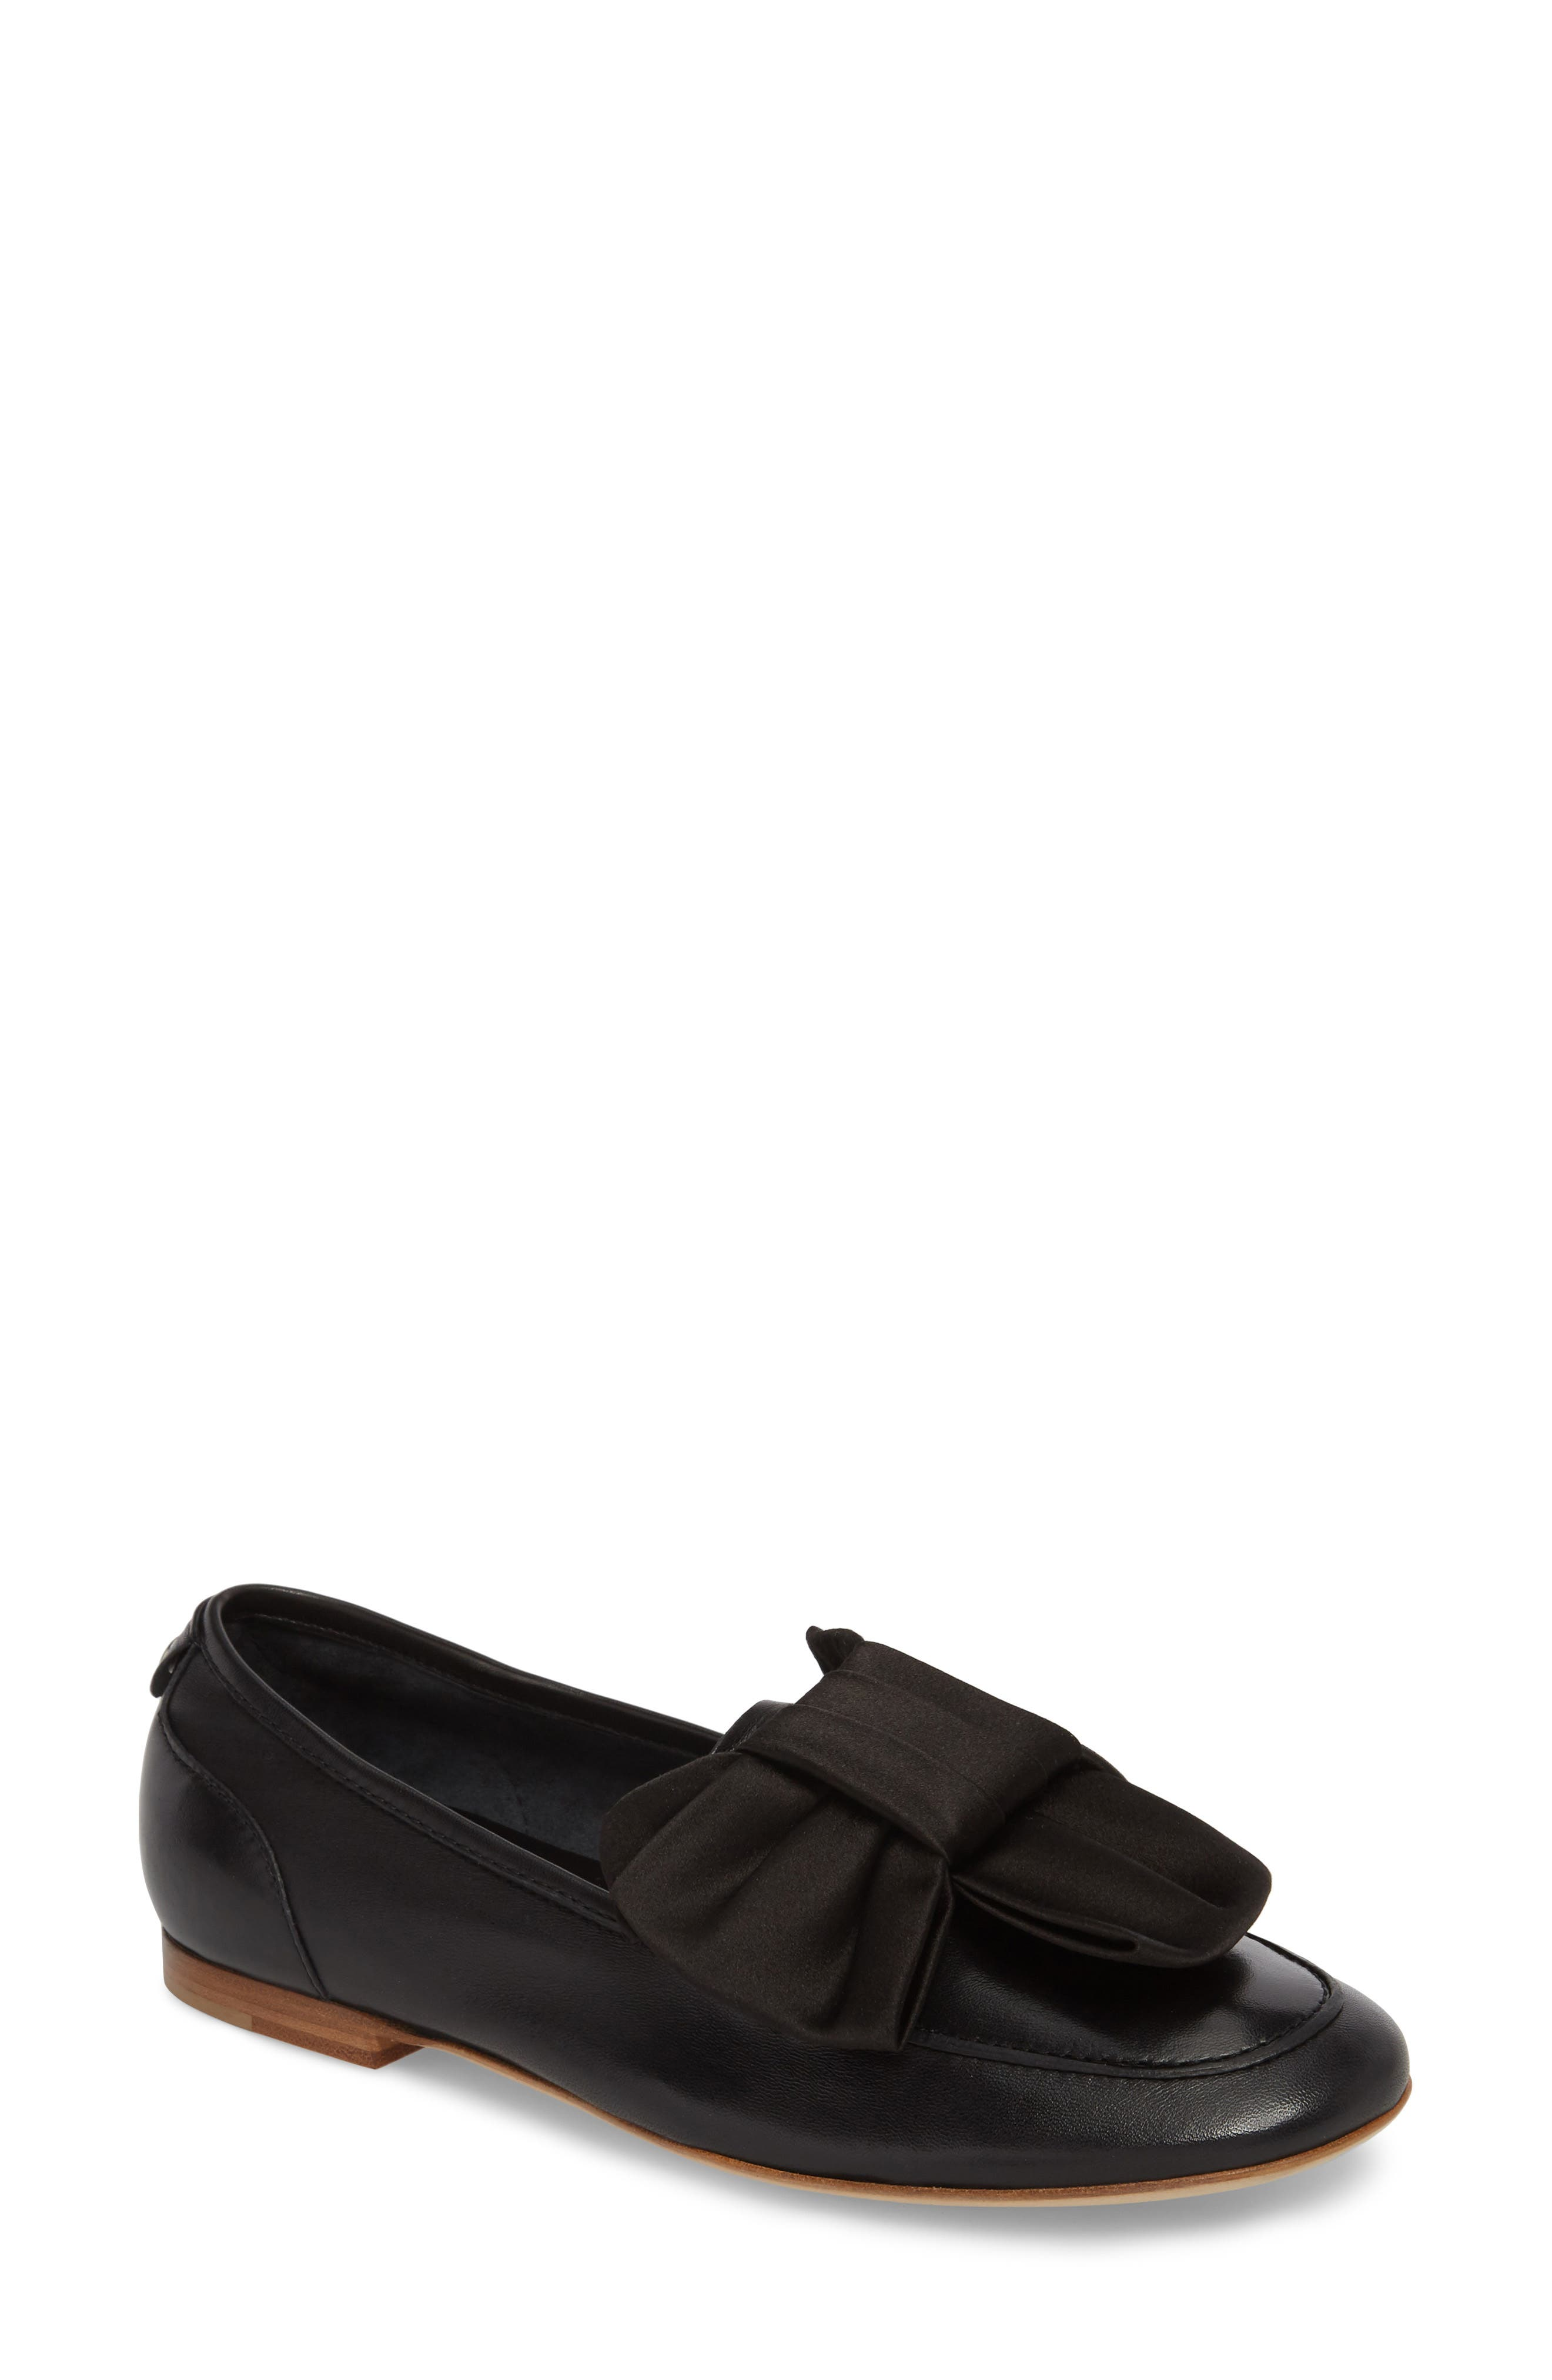 Bow Loafer,                             Main thumbnail 1, color,                             001